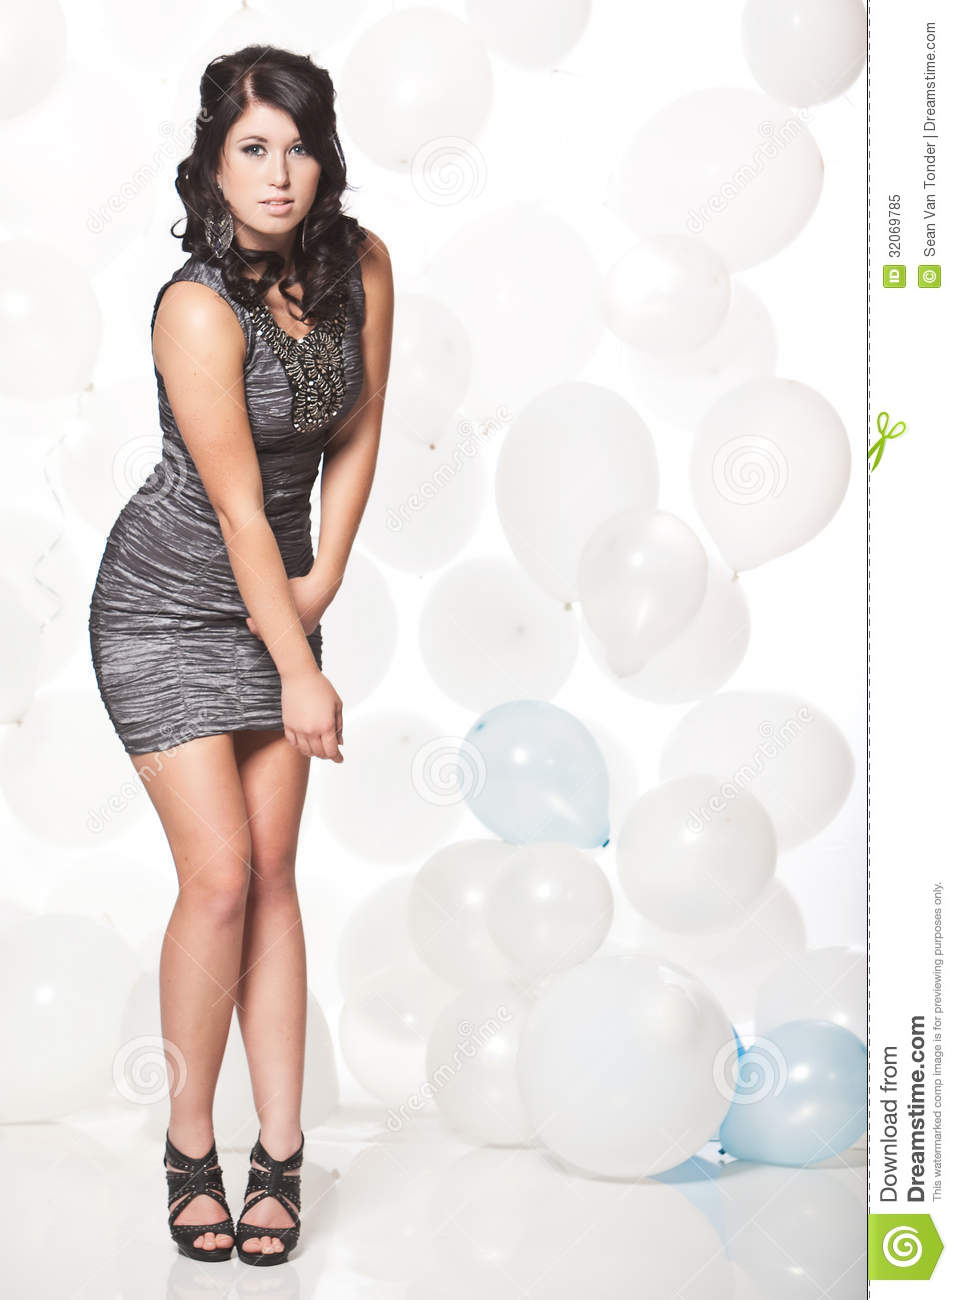 Female Fashion Model Posing With A Balloon Background